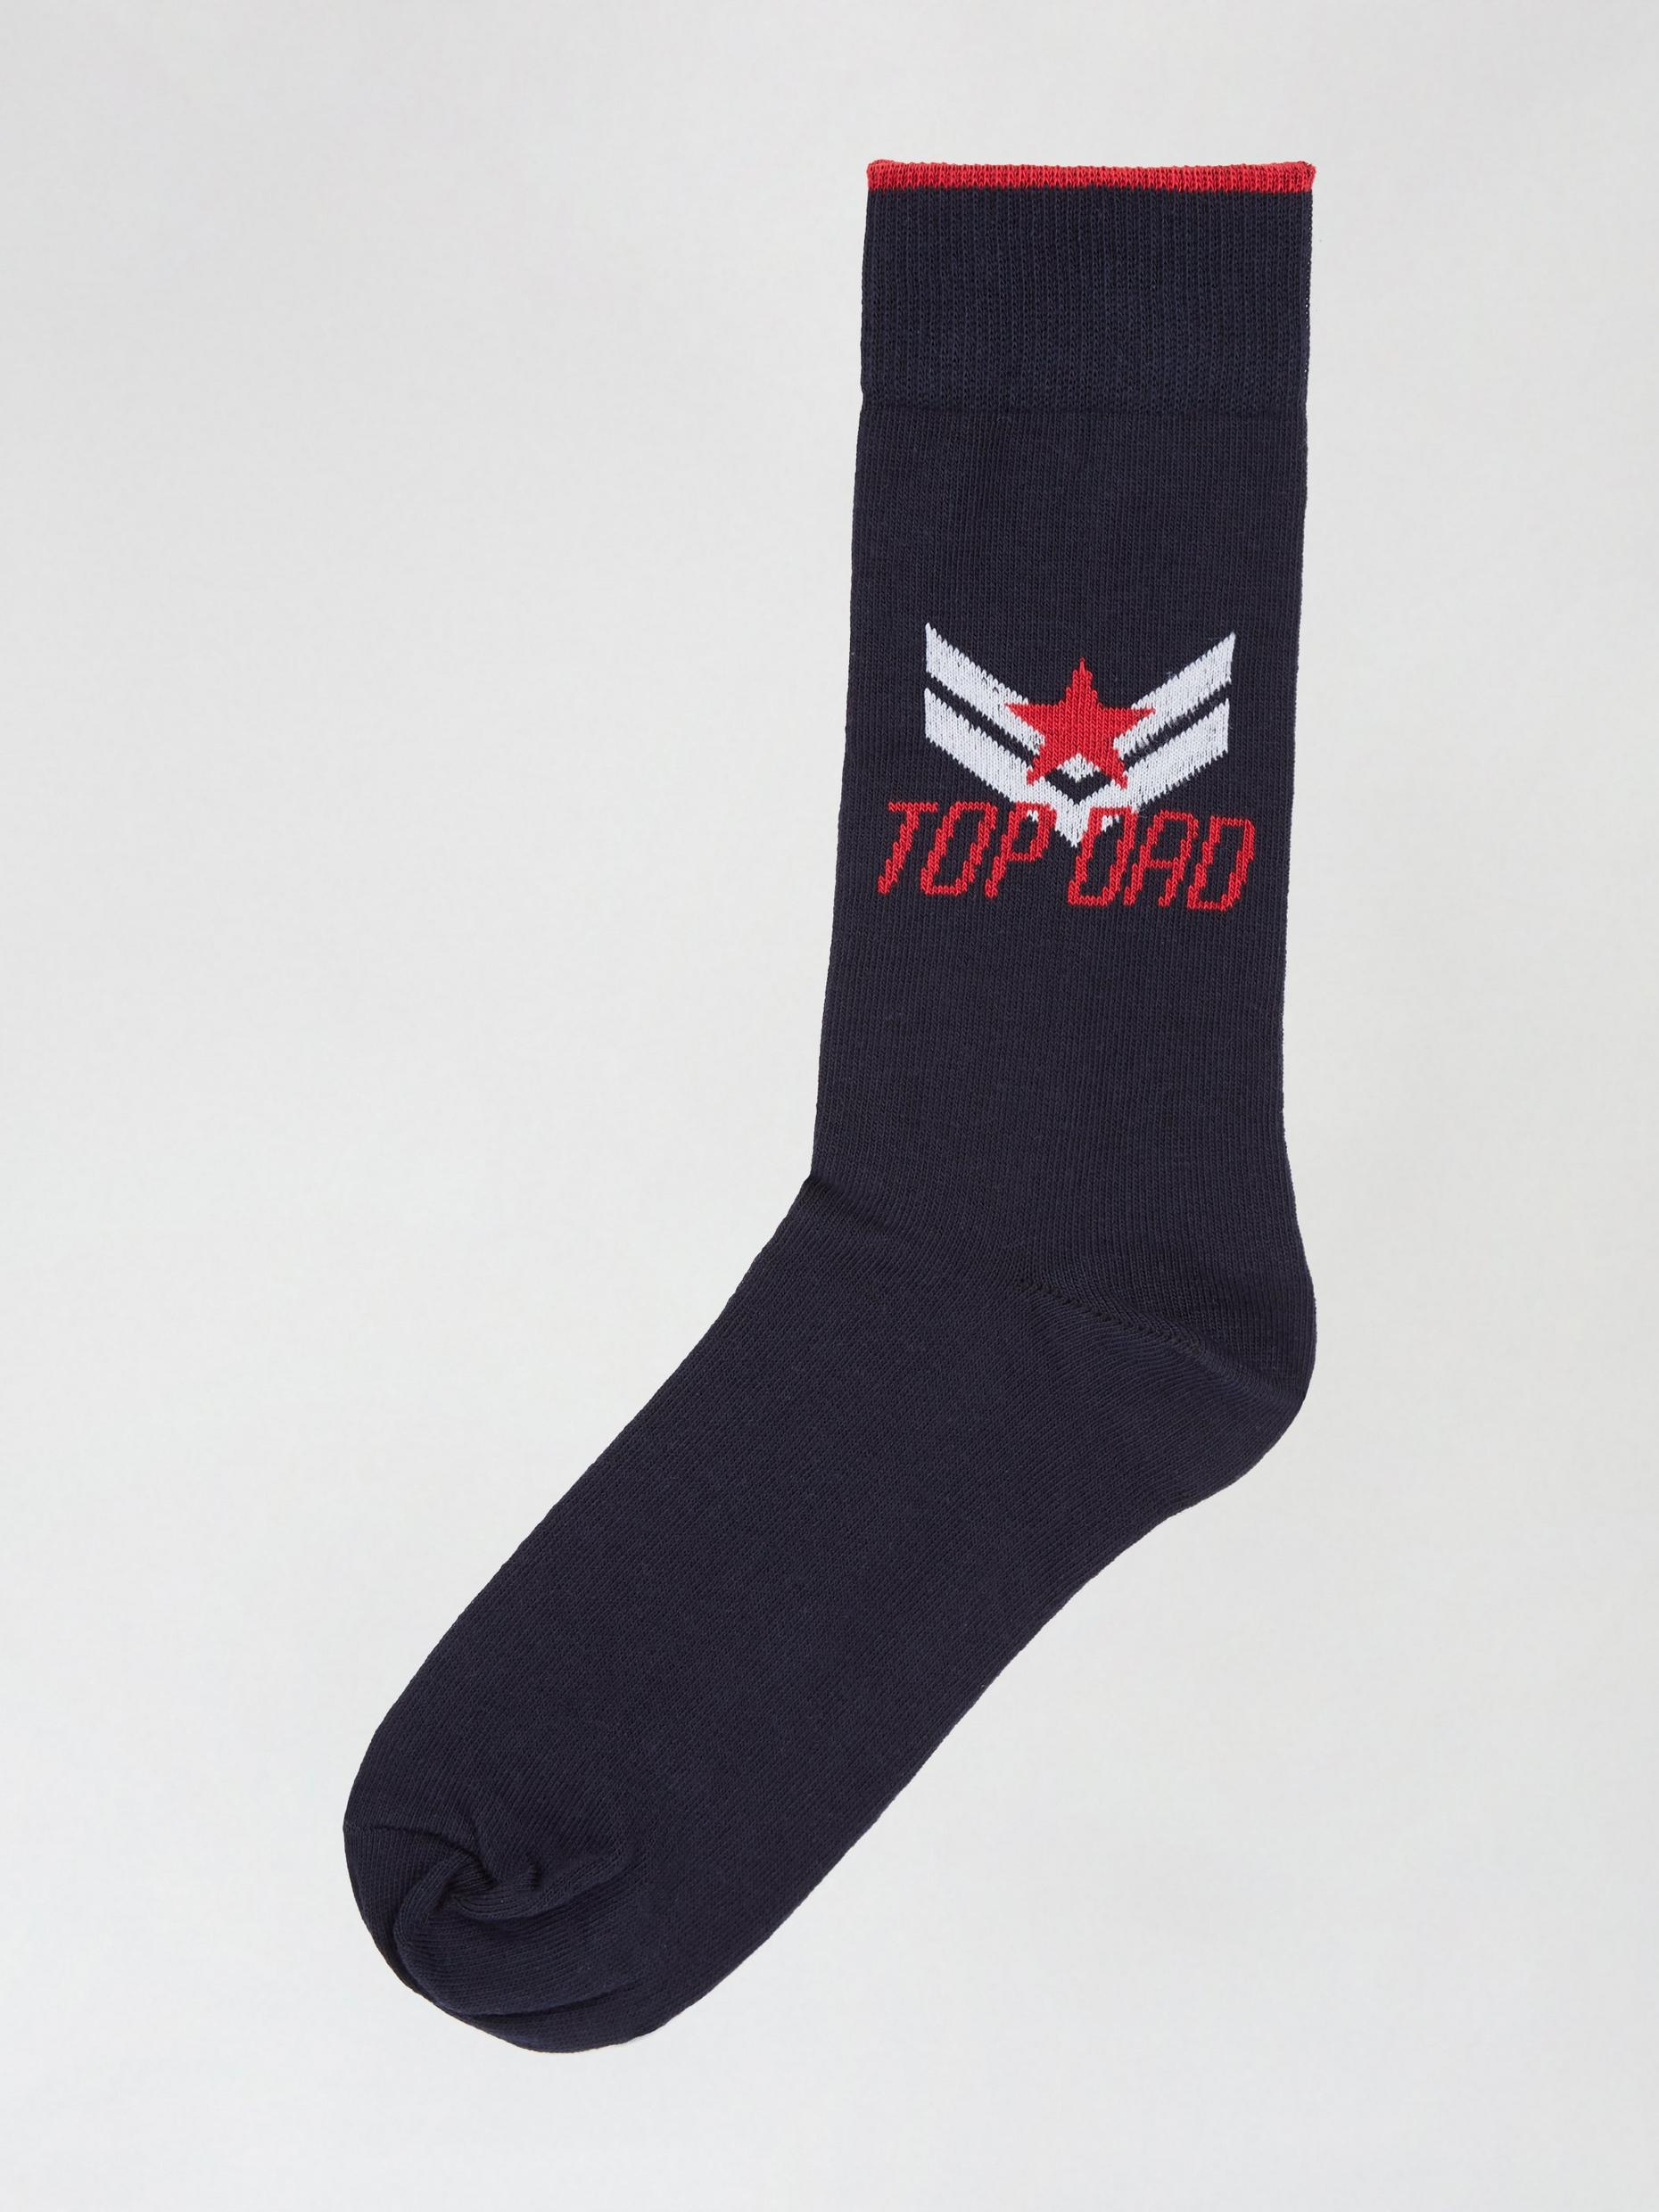 1 Pack Navy Top Dad Socks